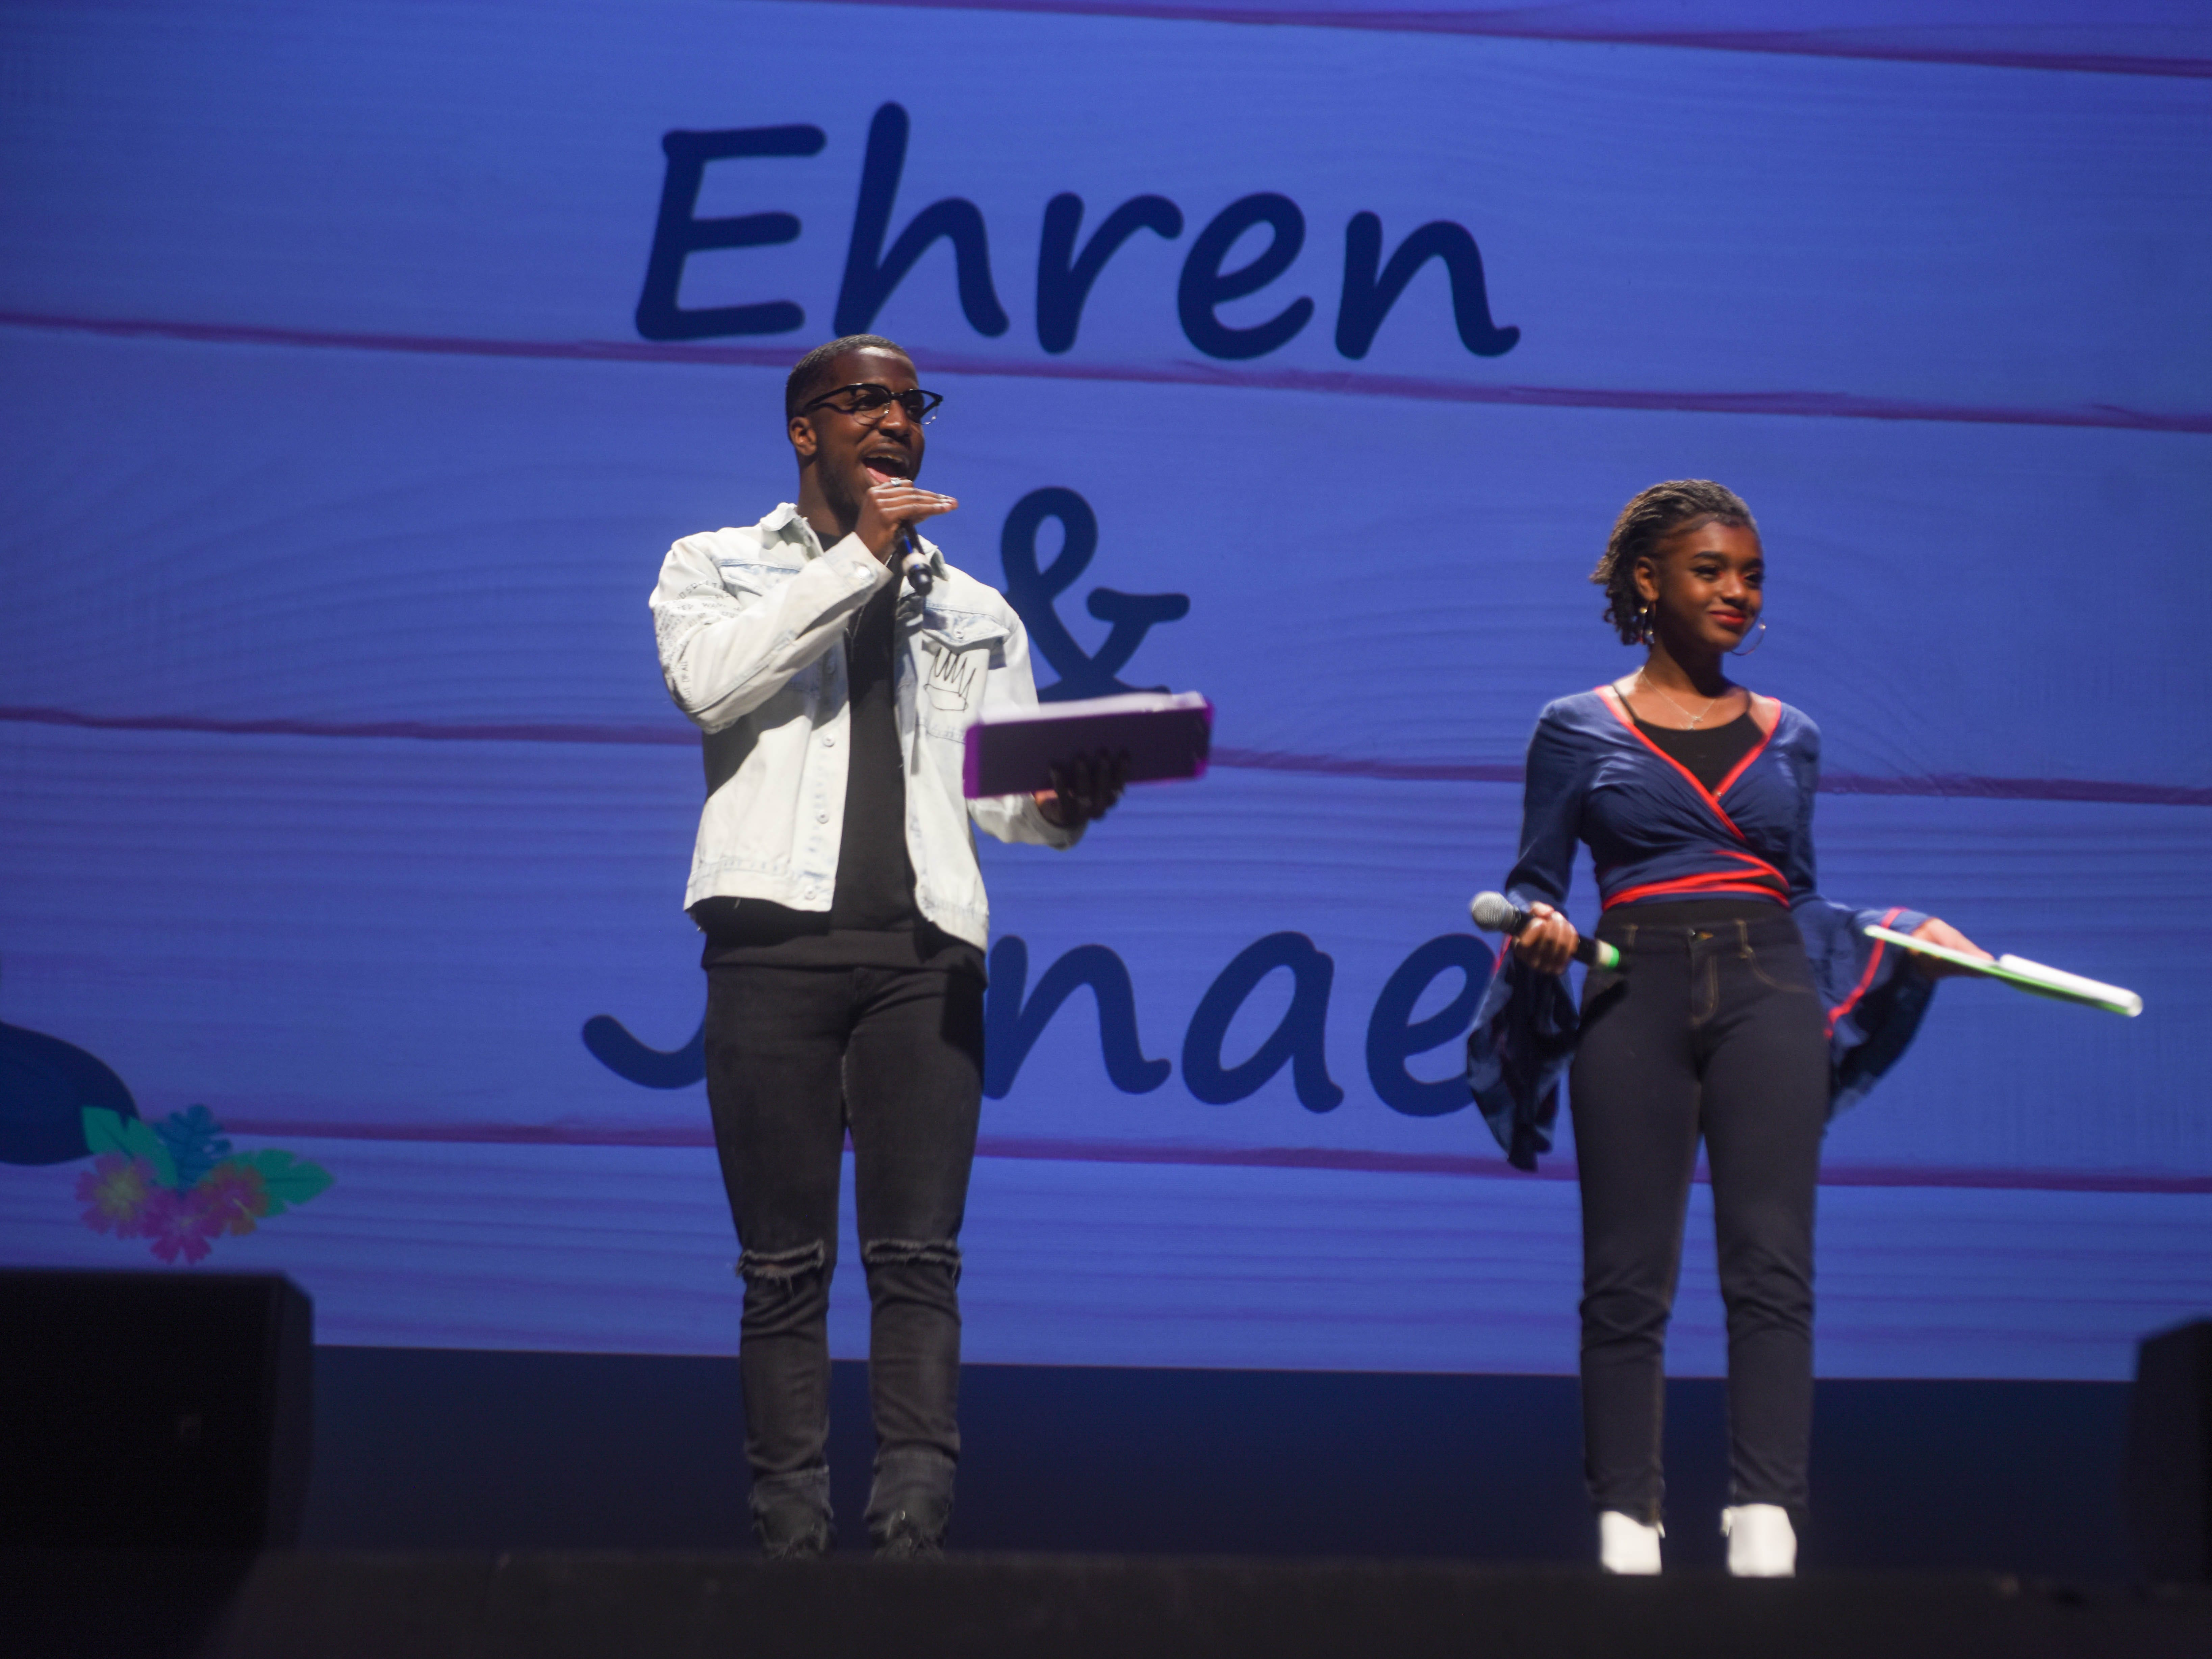 Event M.C.'s - Ehren Layne and Janae Wilson. The 2019 Englewood Idol was held at bergenPAC theater. The singing competition is open to any high school student who currently lives or goes to school in Englewood, NJ. This years winner was Genesis Capellan. 01/11/2019